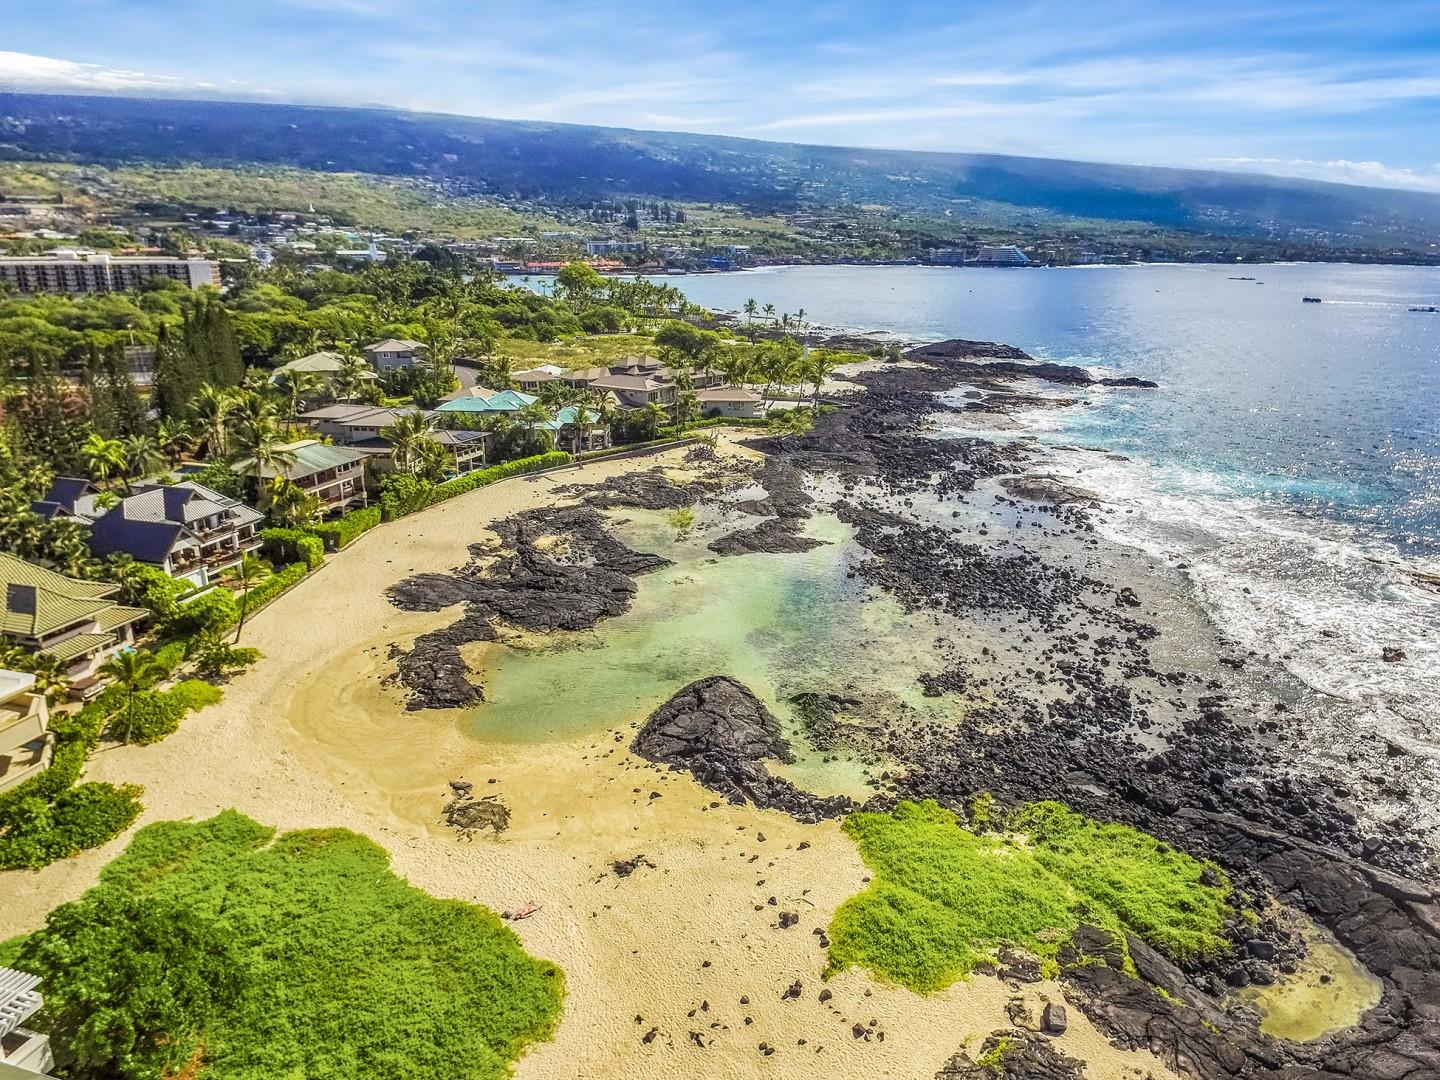 Aerial of Keiki Ponds protected cove